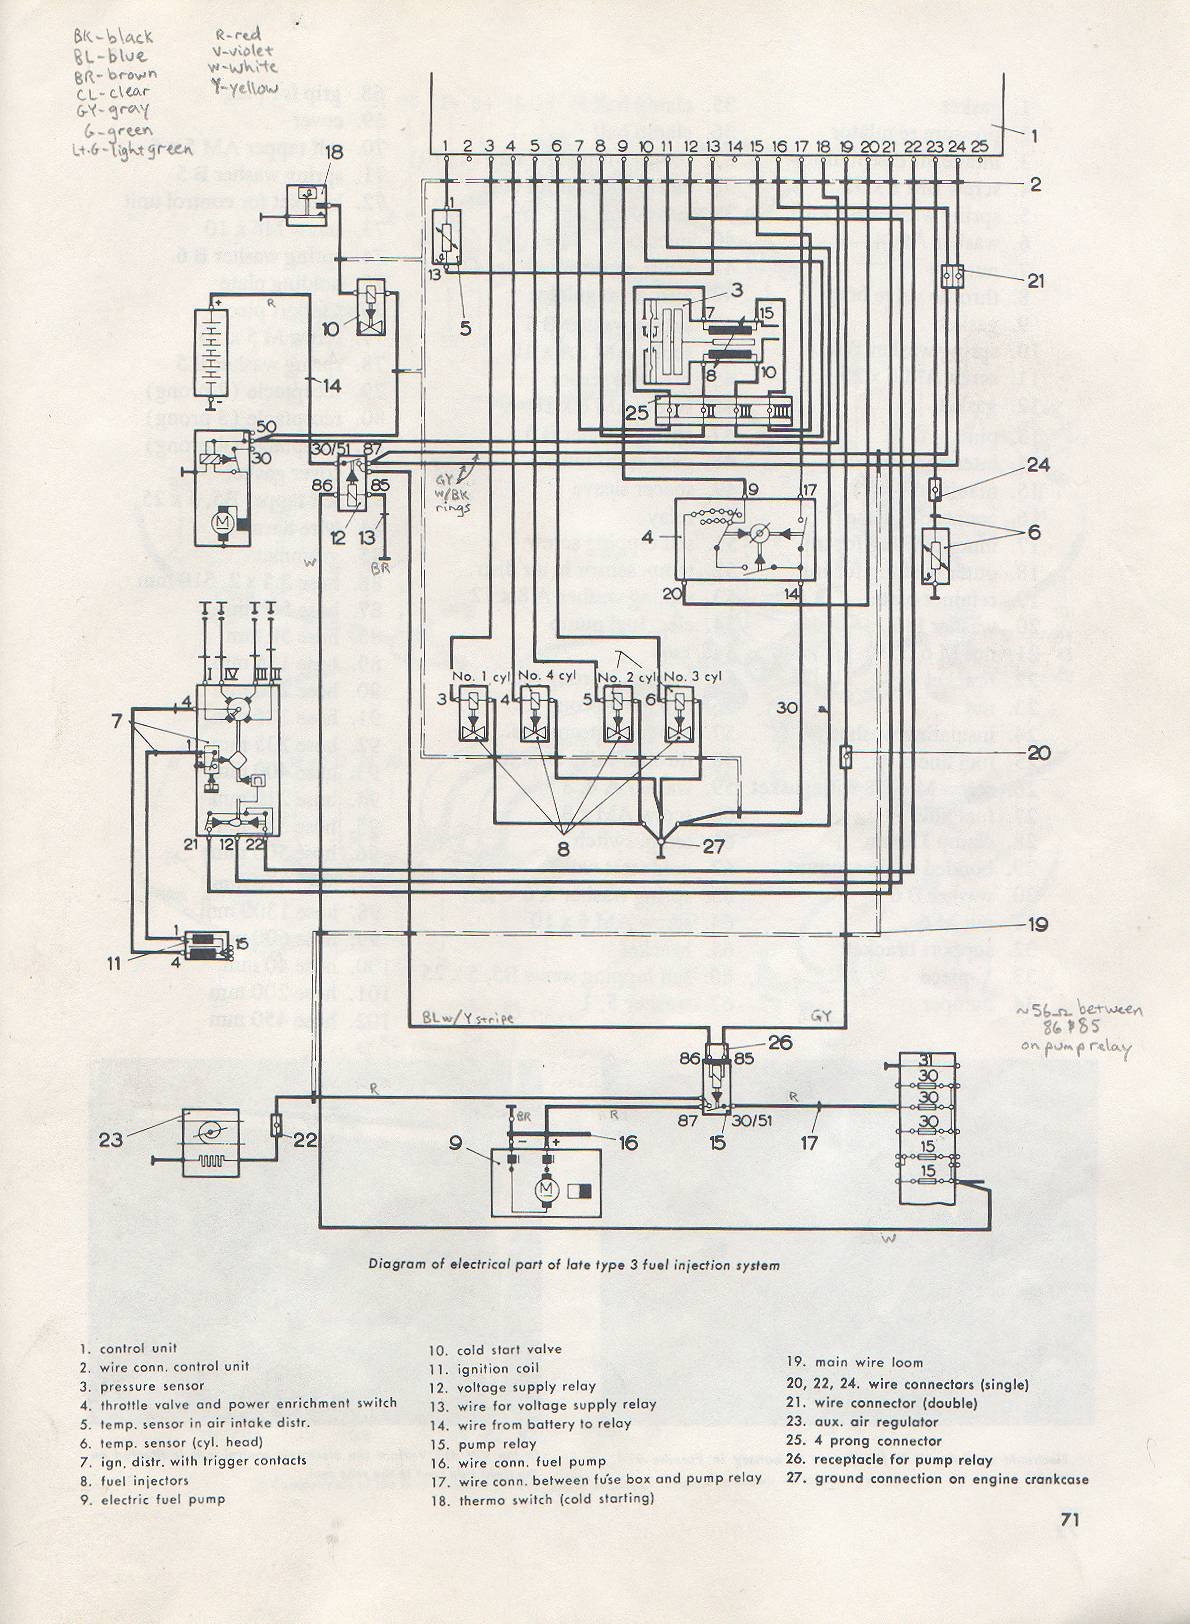 Type 3 Wiring Diagram Library 12 Volt Fuel Pump Relay Of Late Fi